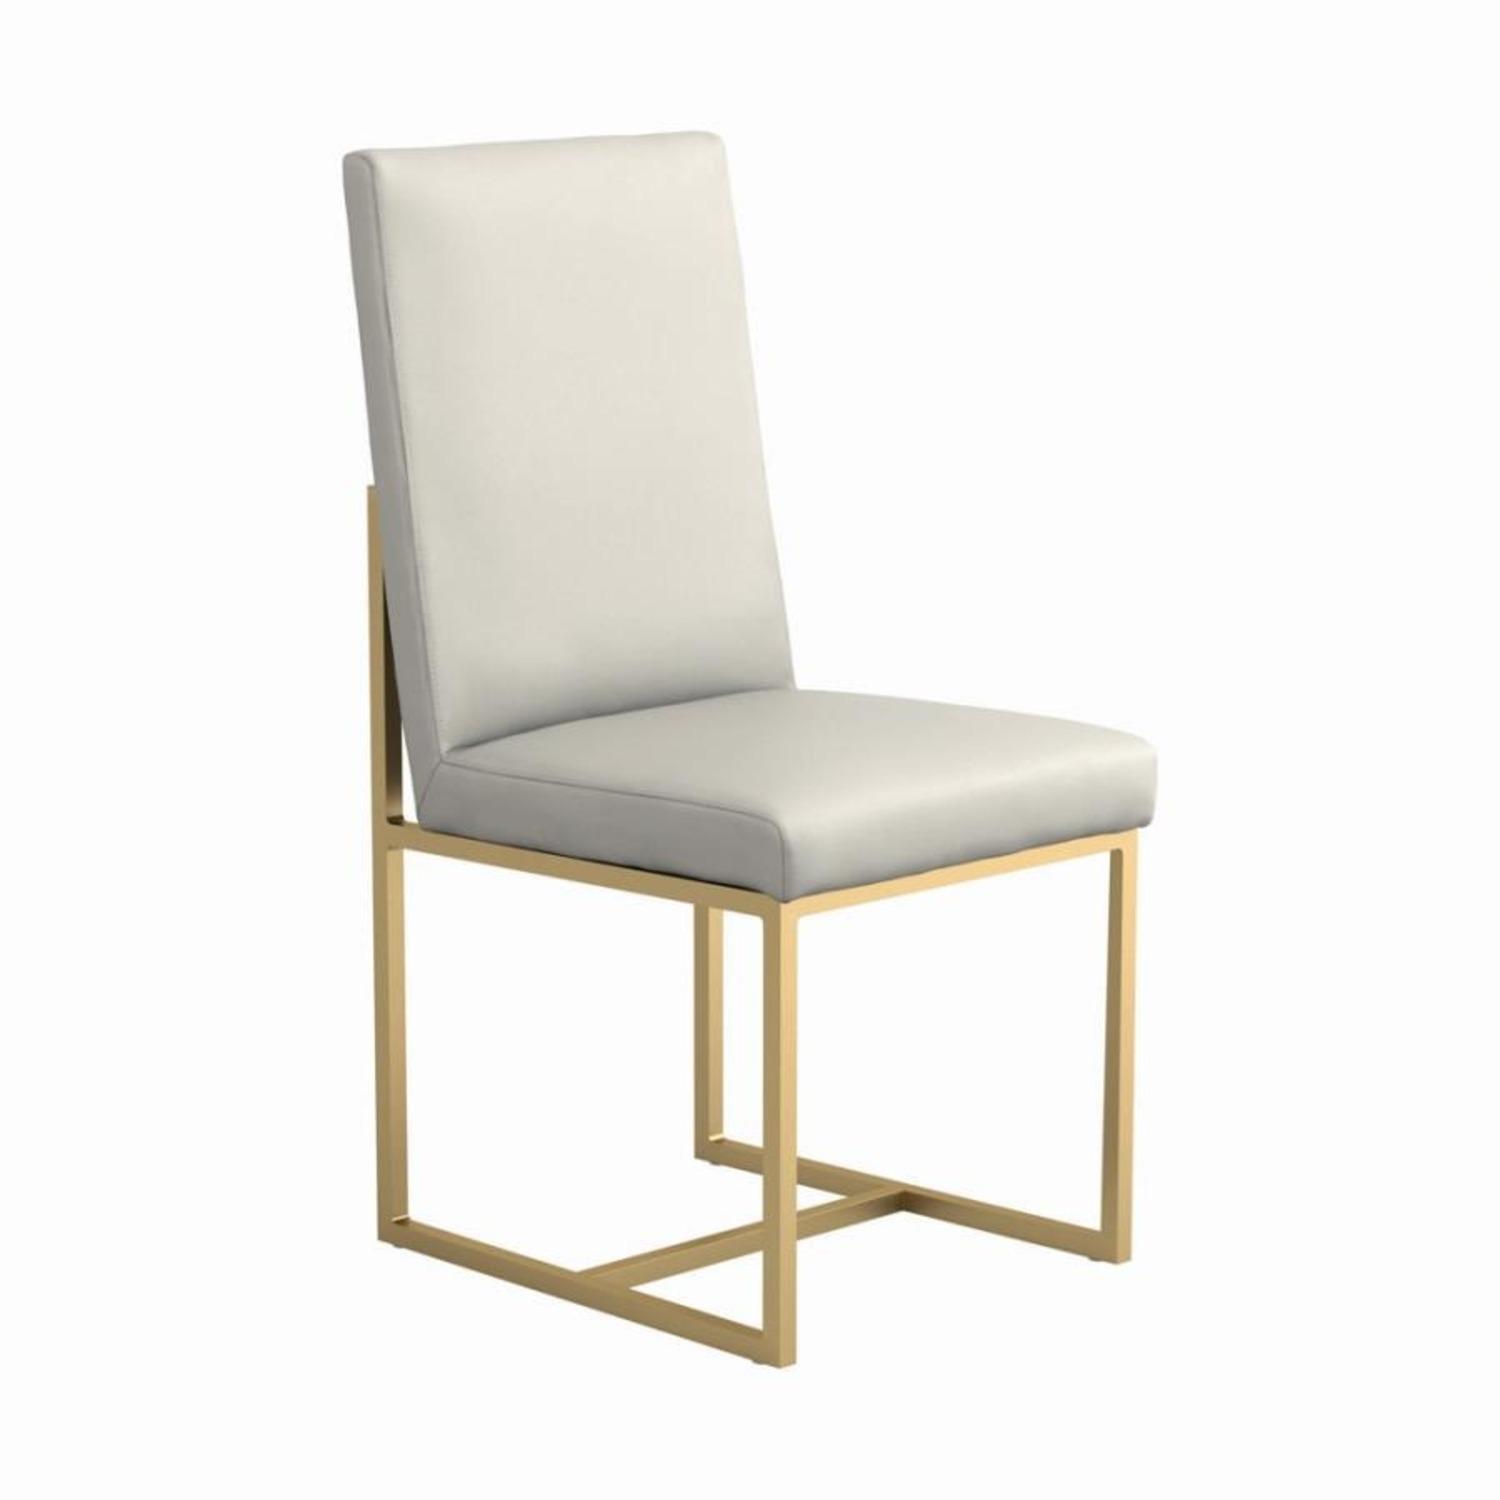 Contemporary Side Chair In Grey Leatherette - image-0